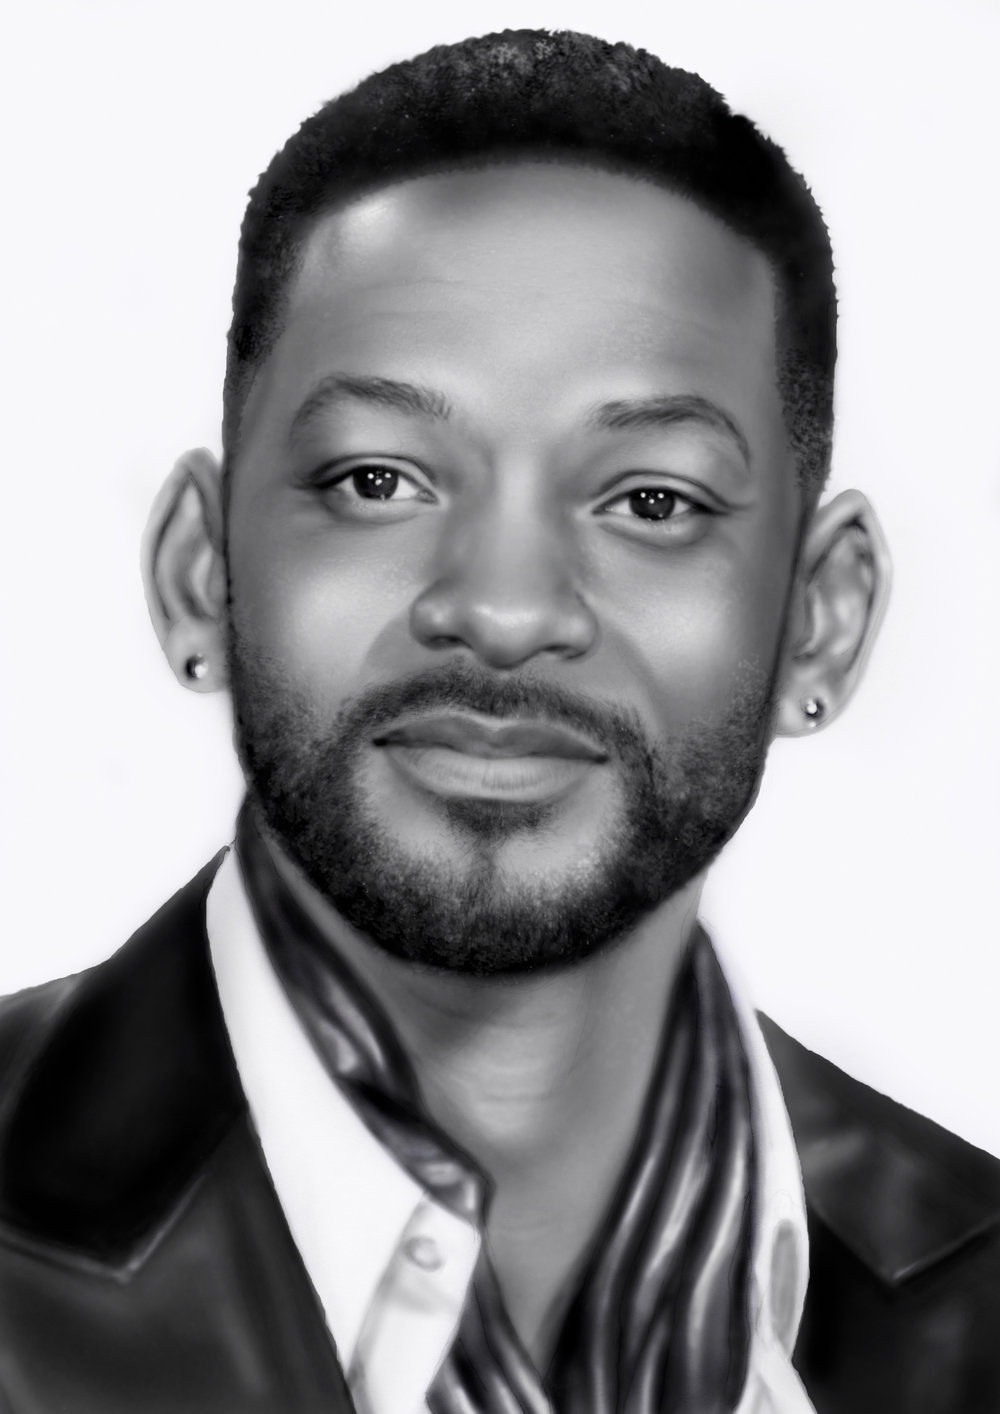 Will Smith Portrait copy.jpg